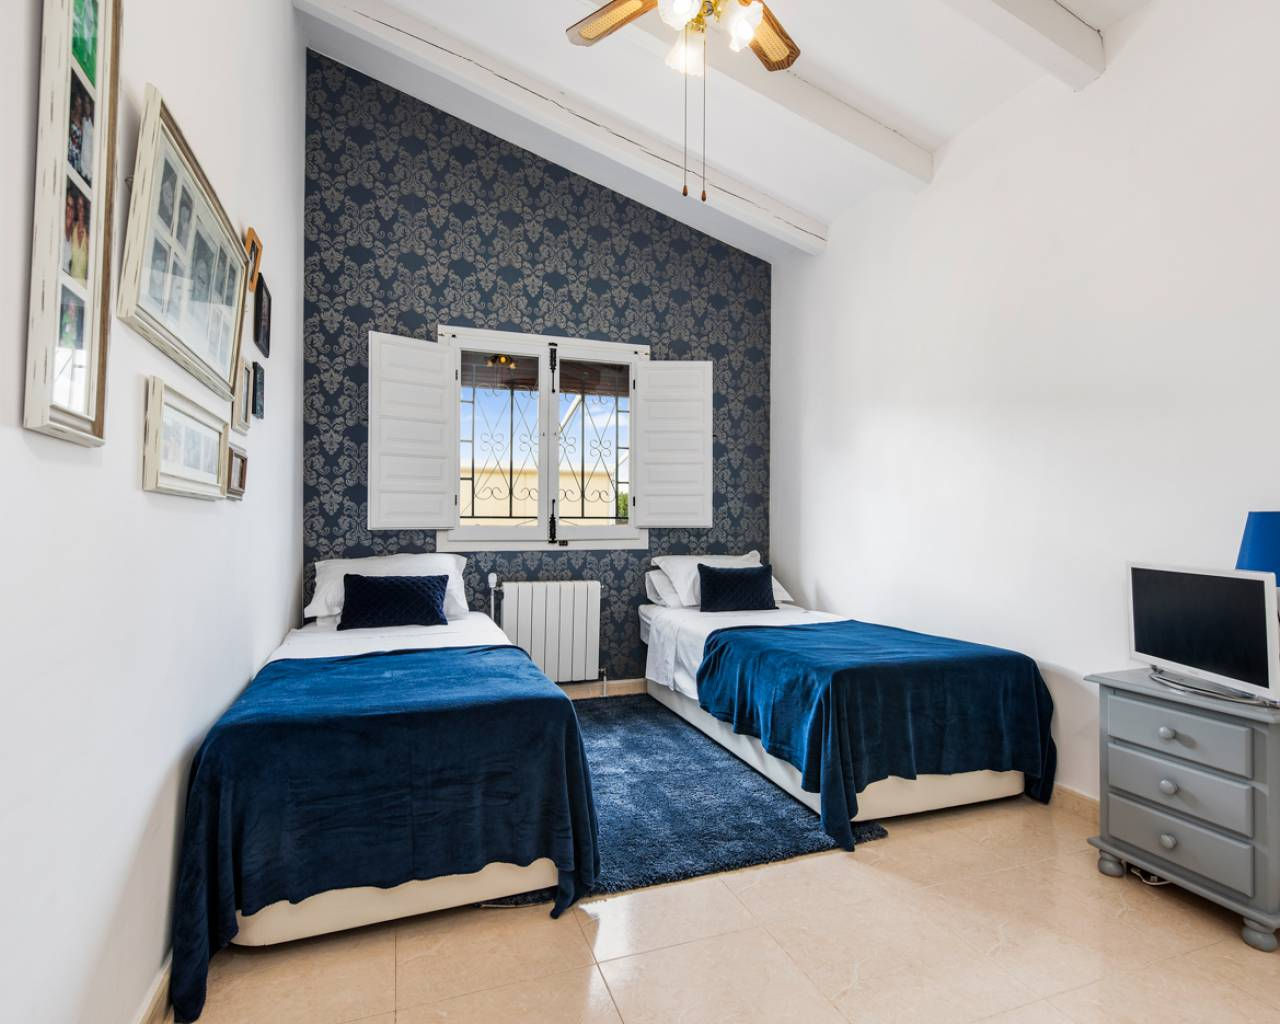 Bedroom III | Buy country house near golf courses